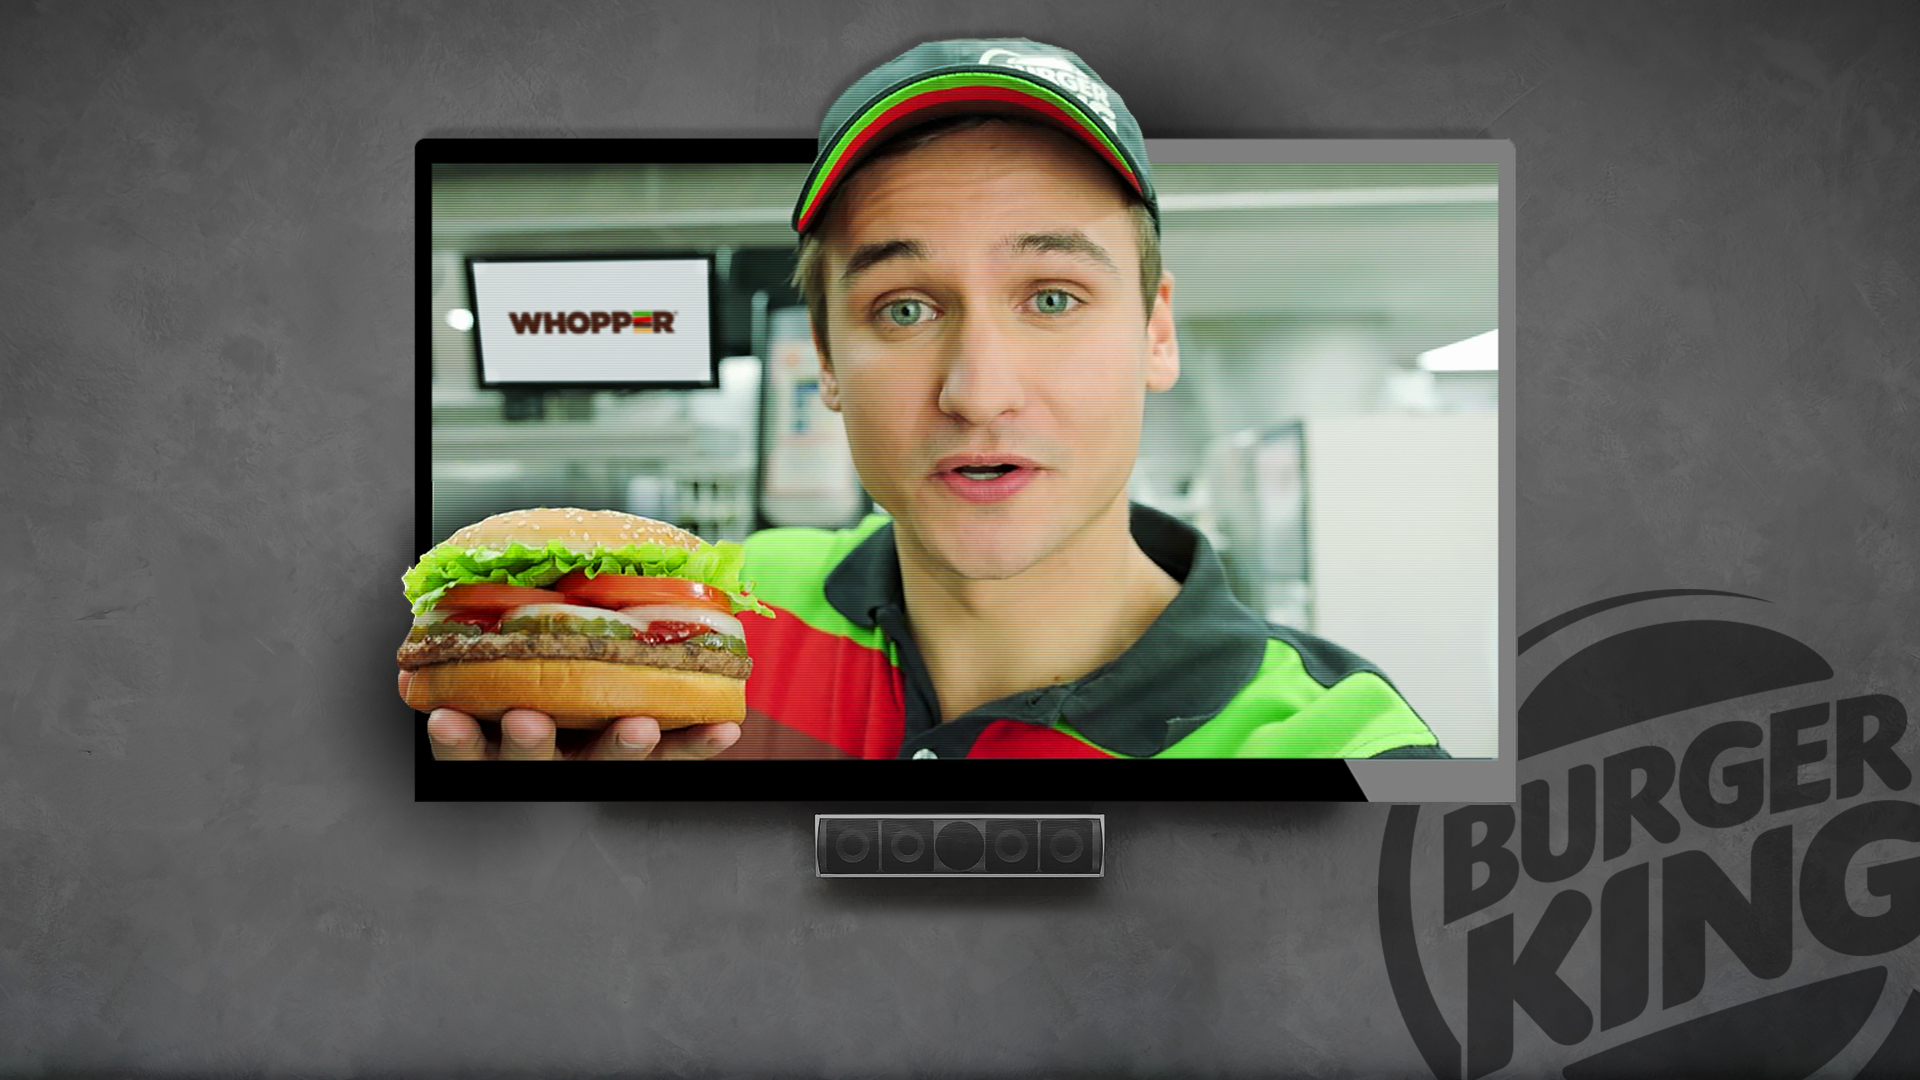 Burger King's New TV Ad Will Trigger Your Google Devices Without Permission